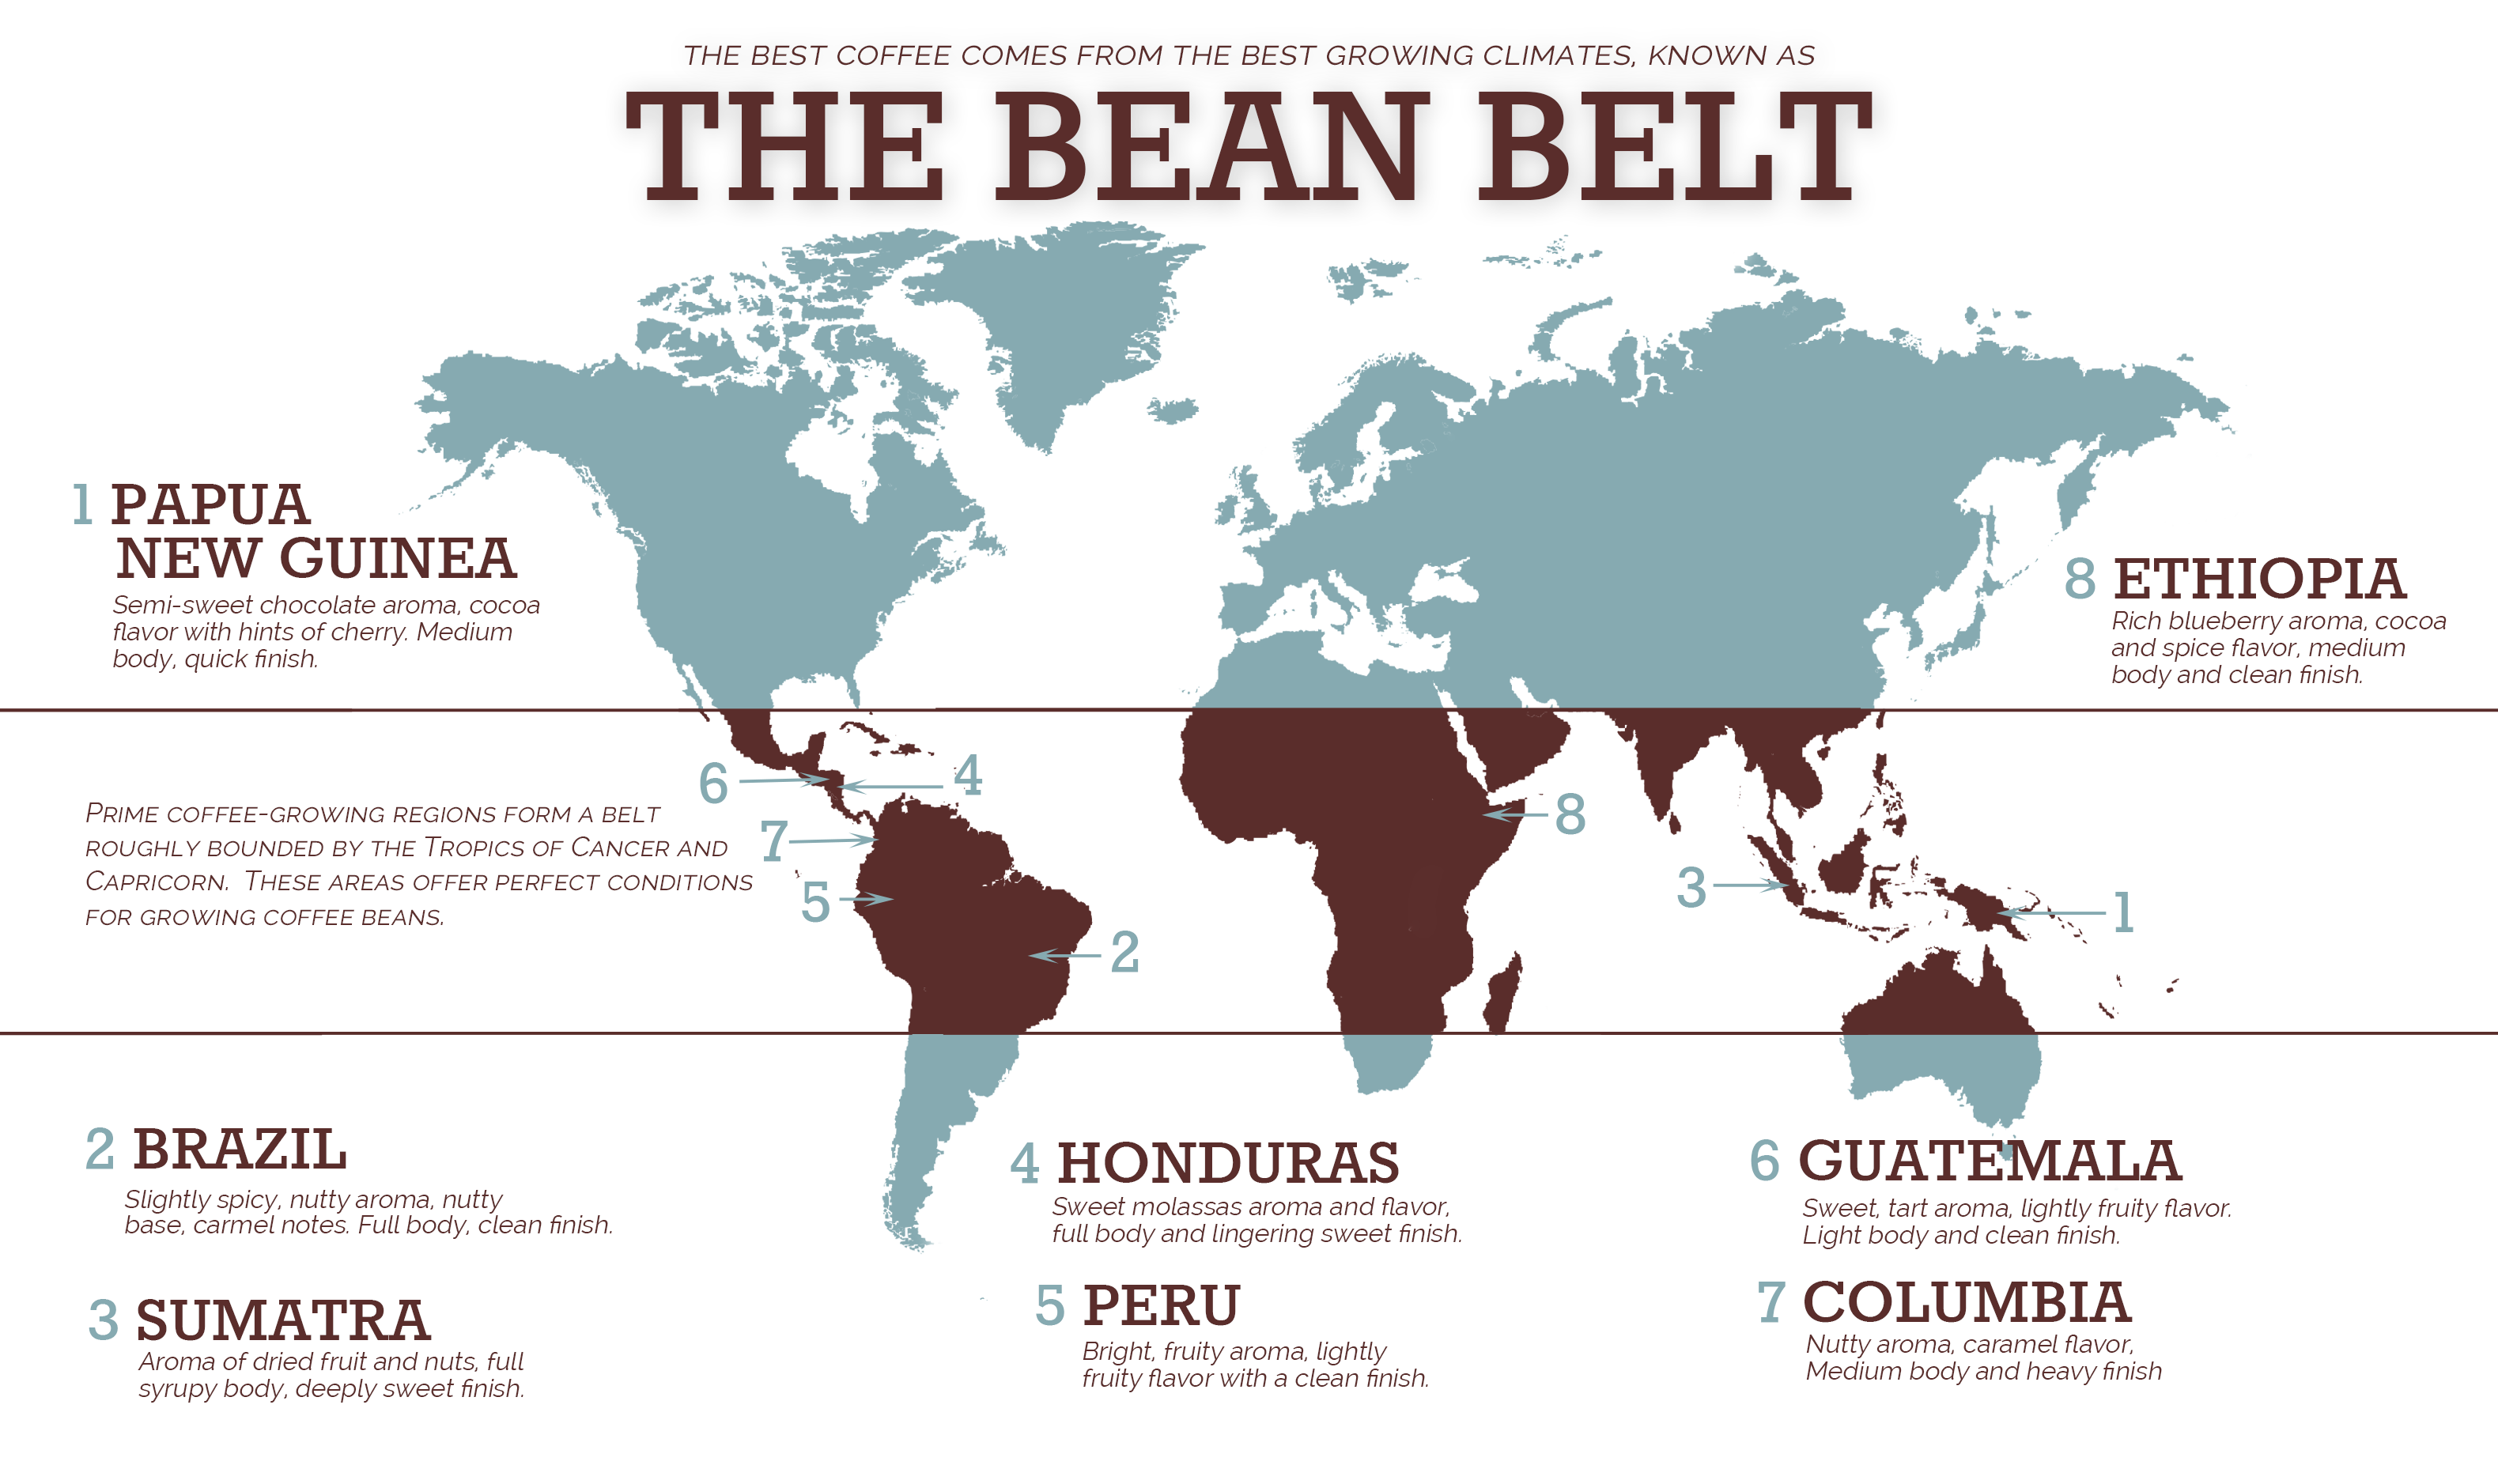 The Coffee Map The Bean Belt コーヒー, 地図, デザイン